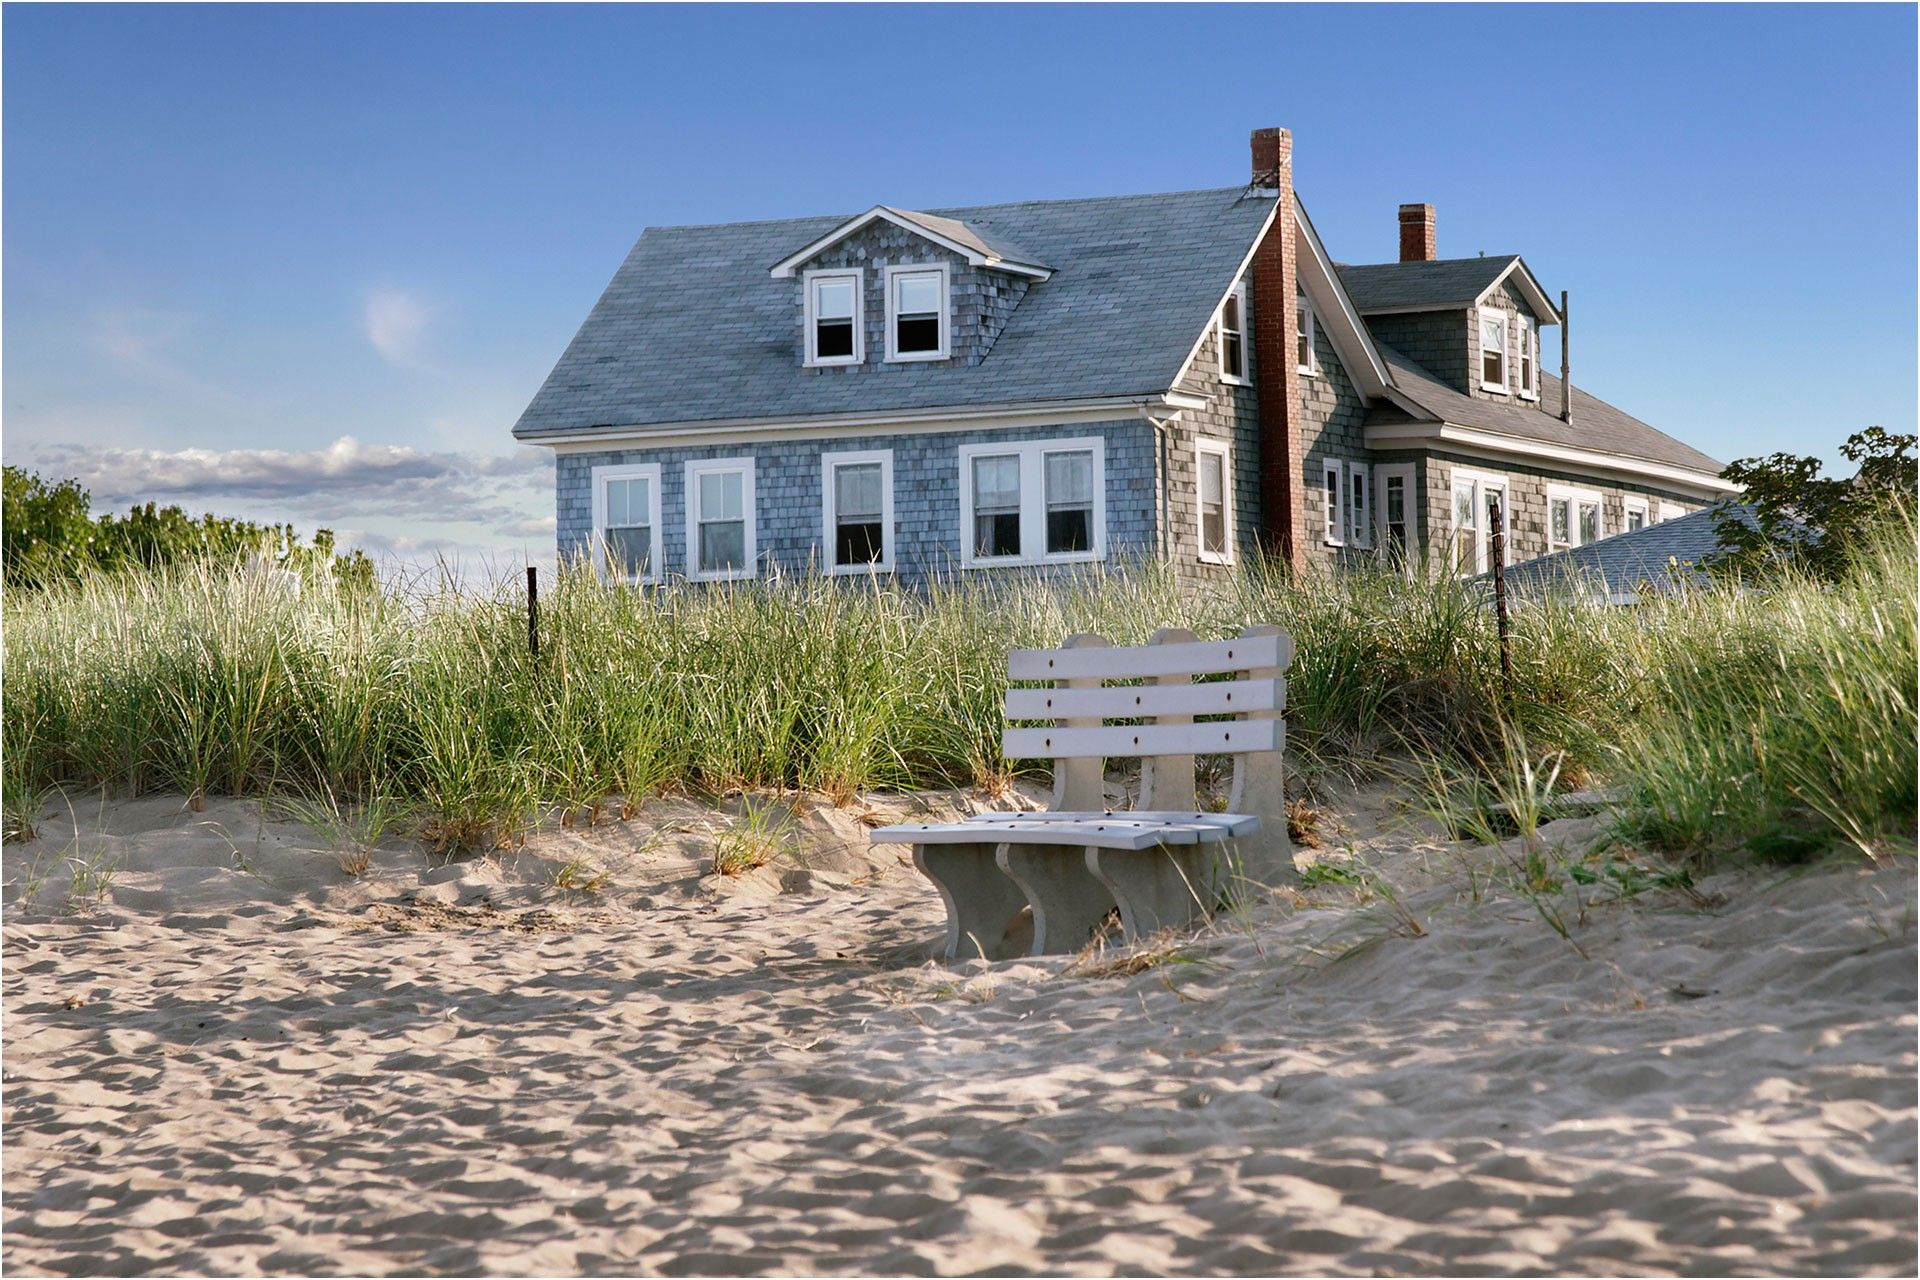 Best New England Beach Rental Destinations Family Vacation Critic From Beach Houses On The East Coast